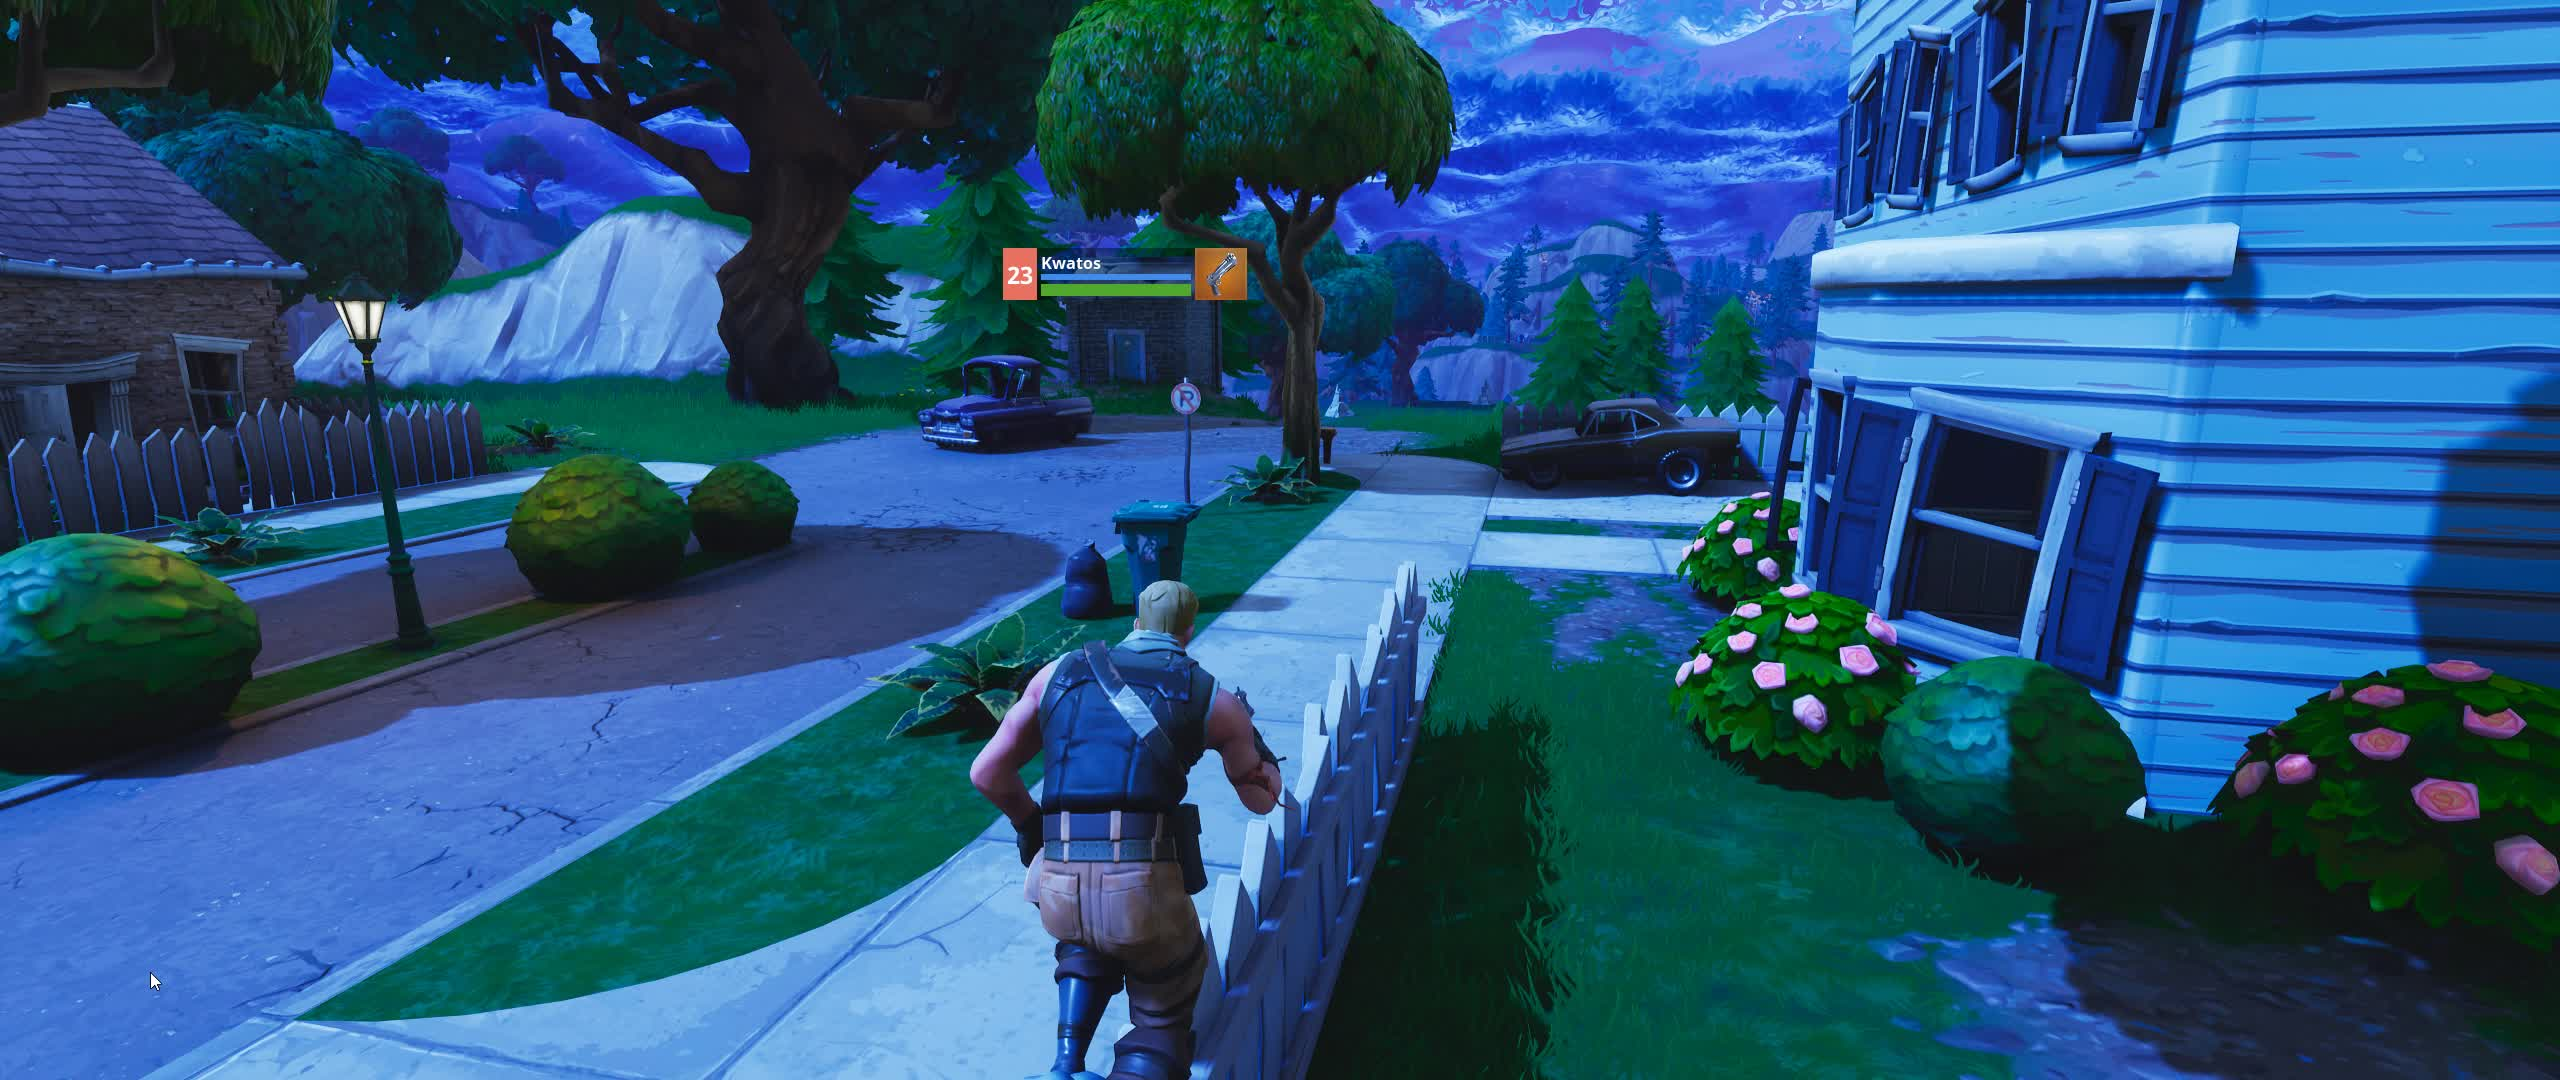 Fortnite Default Skins Gifs Search Search Share On Homdor